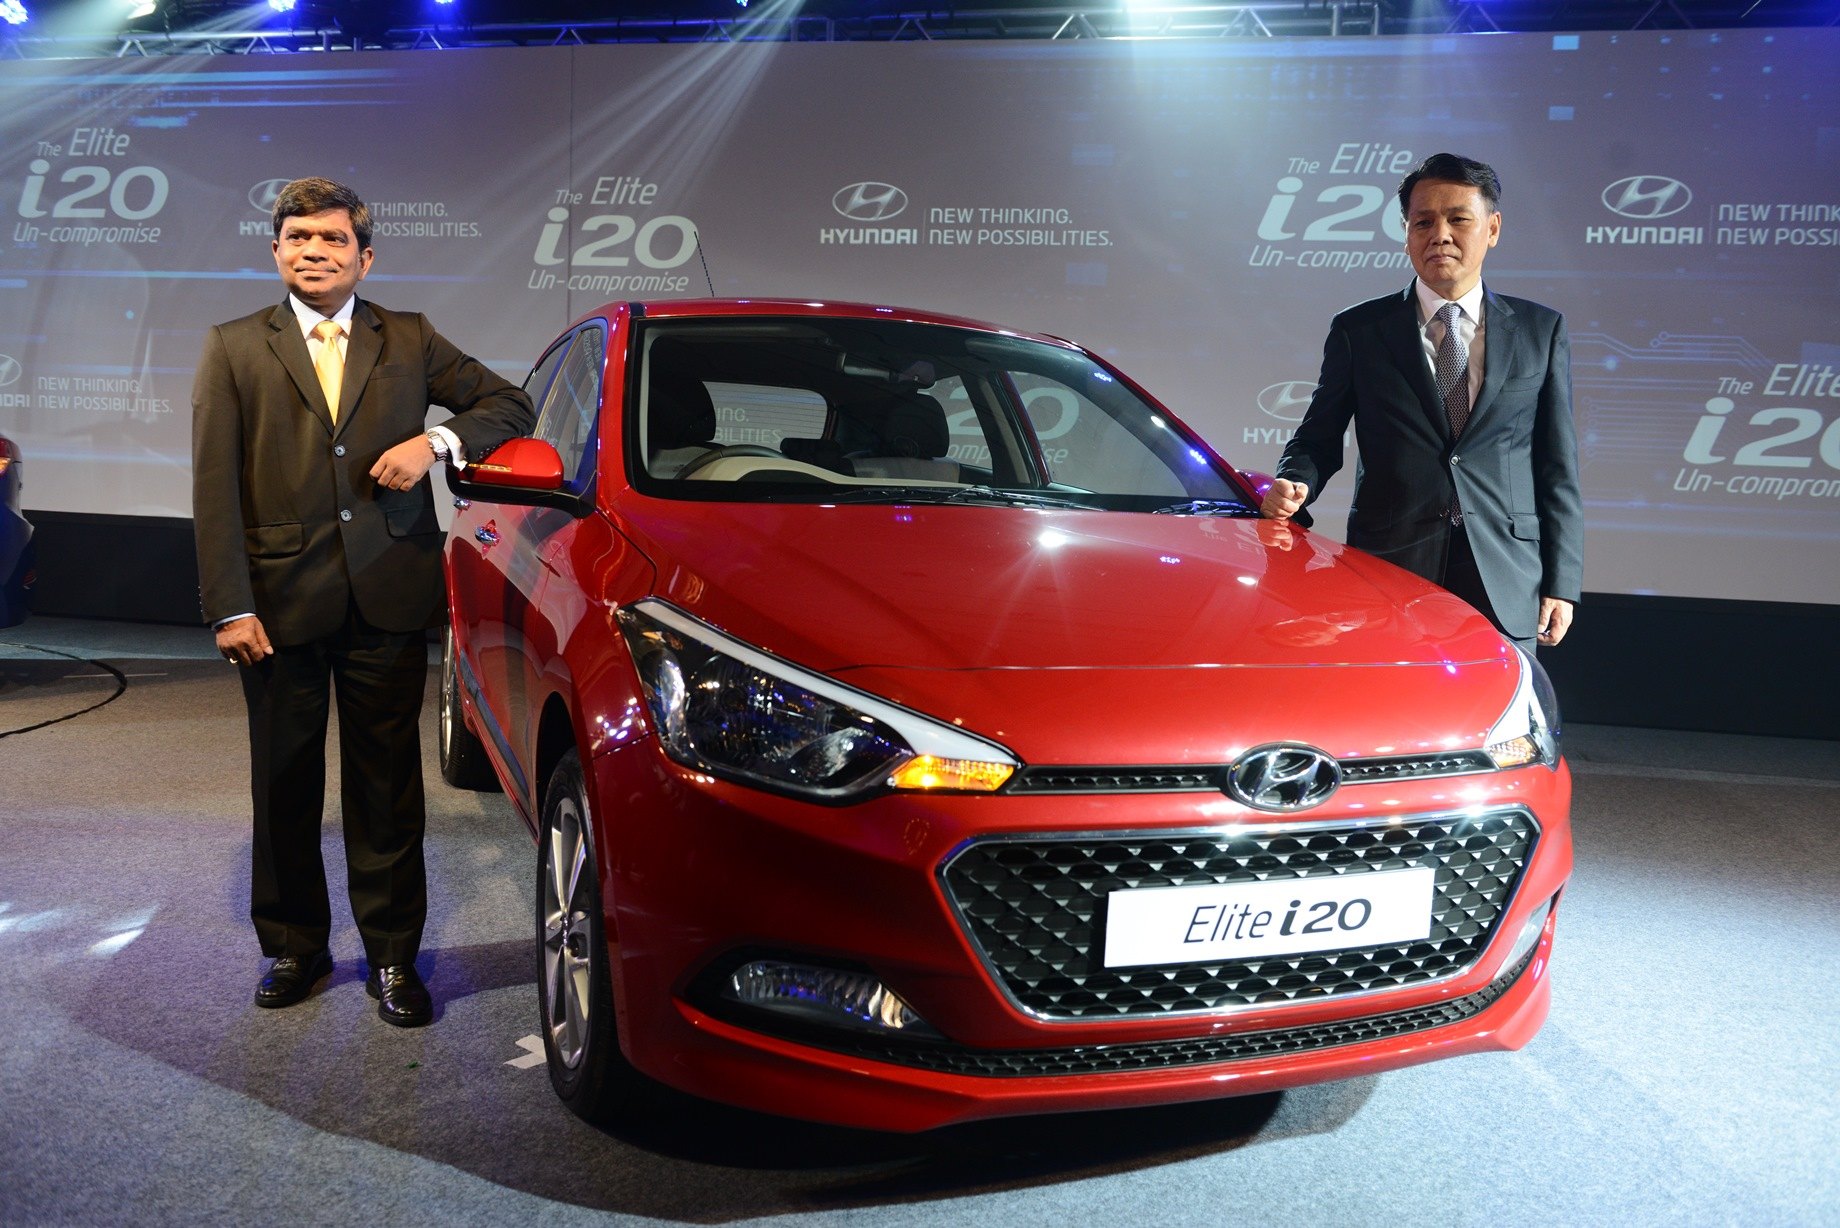 Hyundai Elite i20 launched at Rs. 4.89 lakh